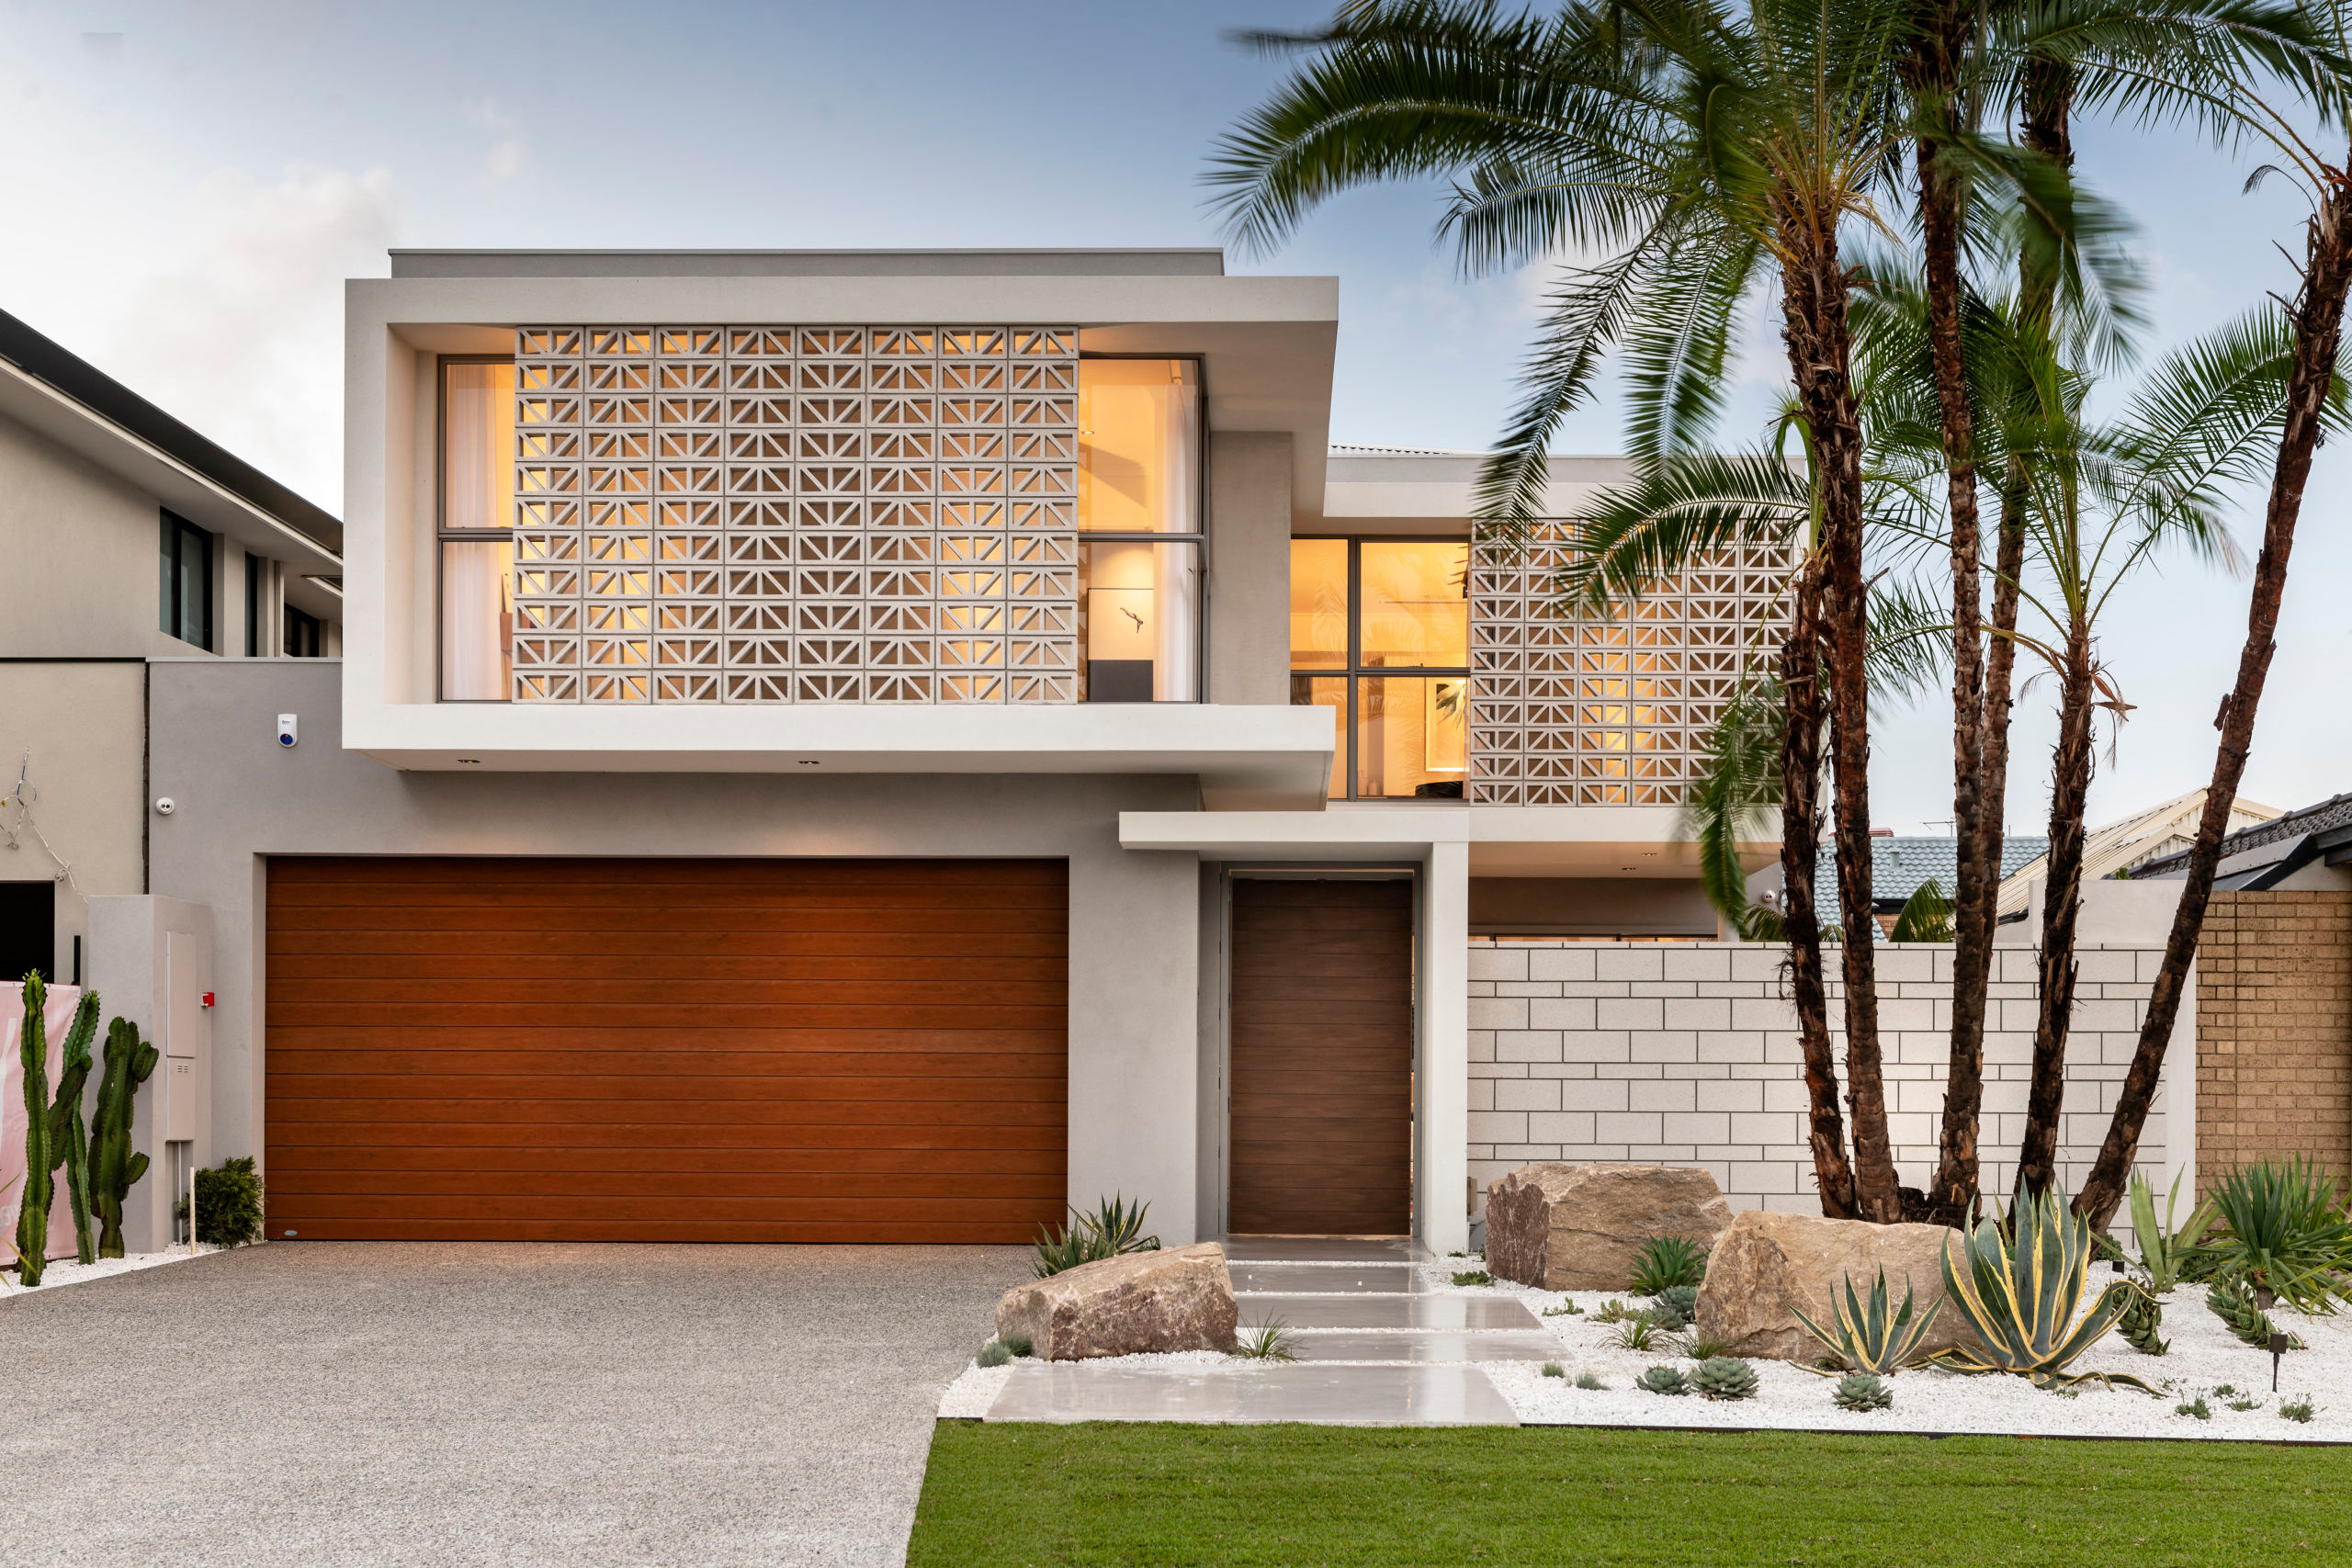 Palm Springs Top 6 Home Style Trends 2021